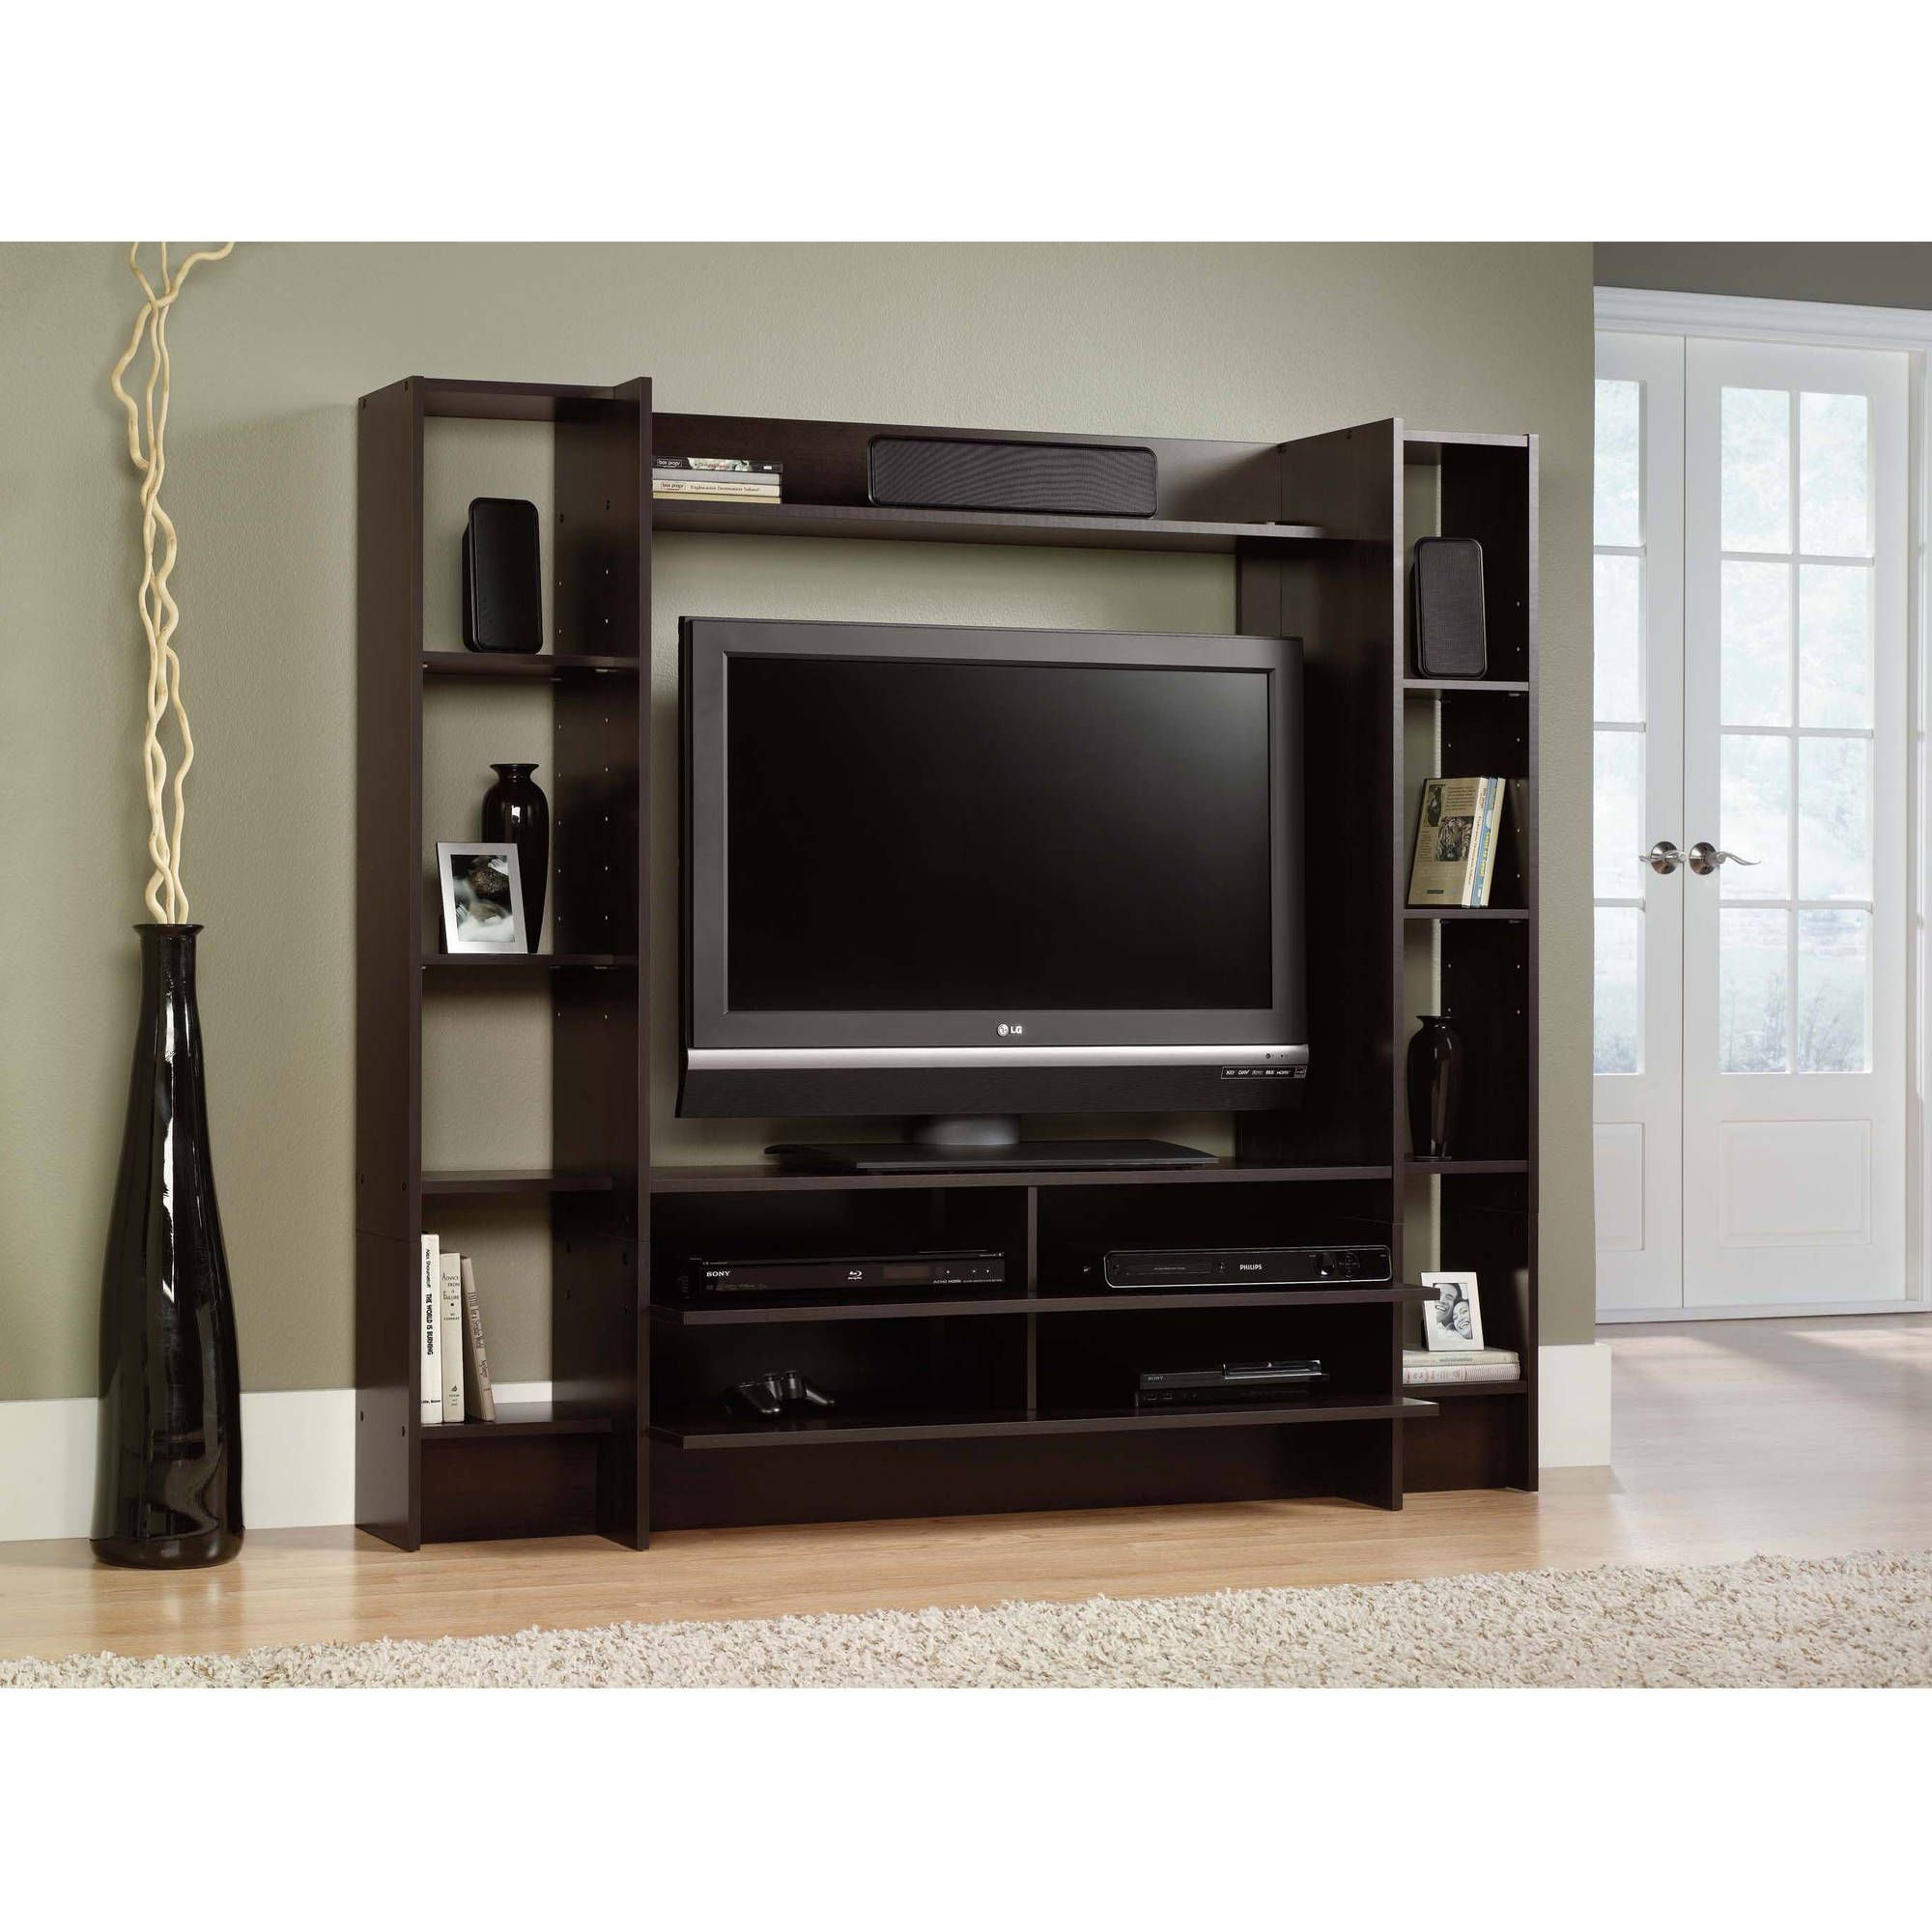 Tv Stands Entertainment Centers Walmart pertaining to tv stand wooden  furniture intended for Home